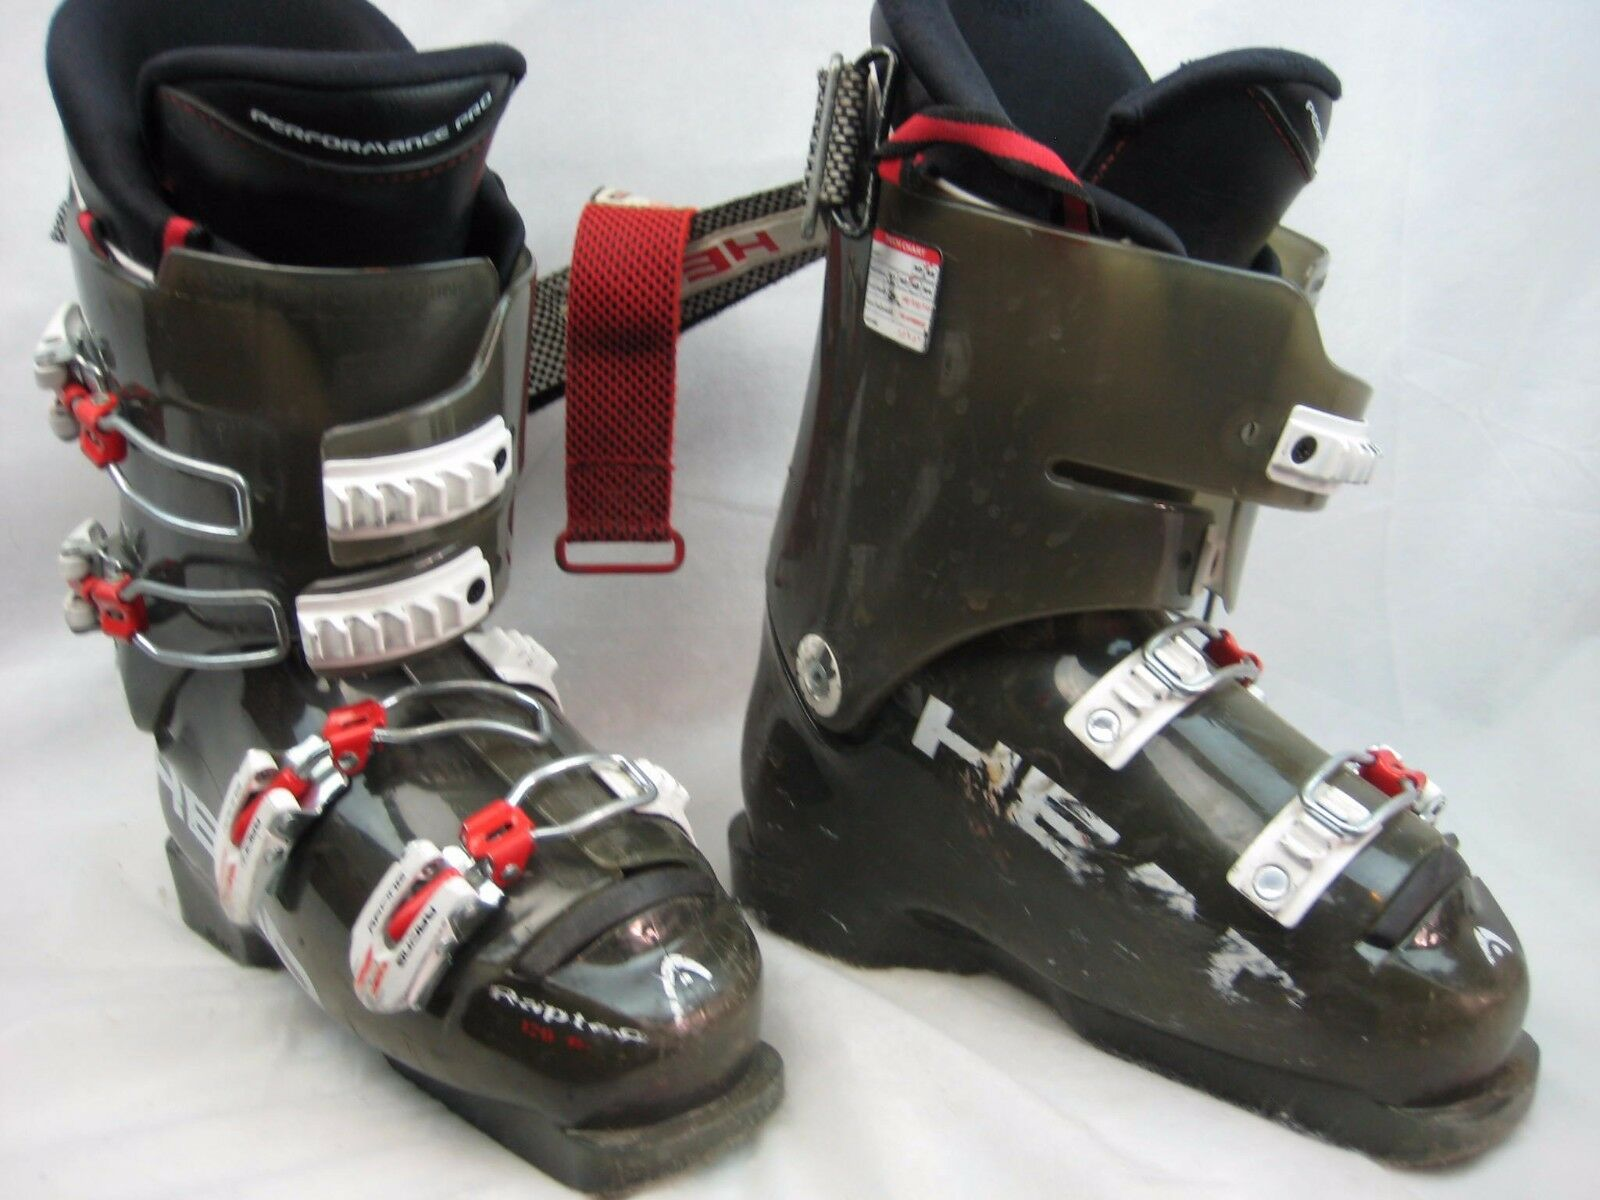 Head  Raptor 120 Rs Ski Boots Size 24-24.5  very popular